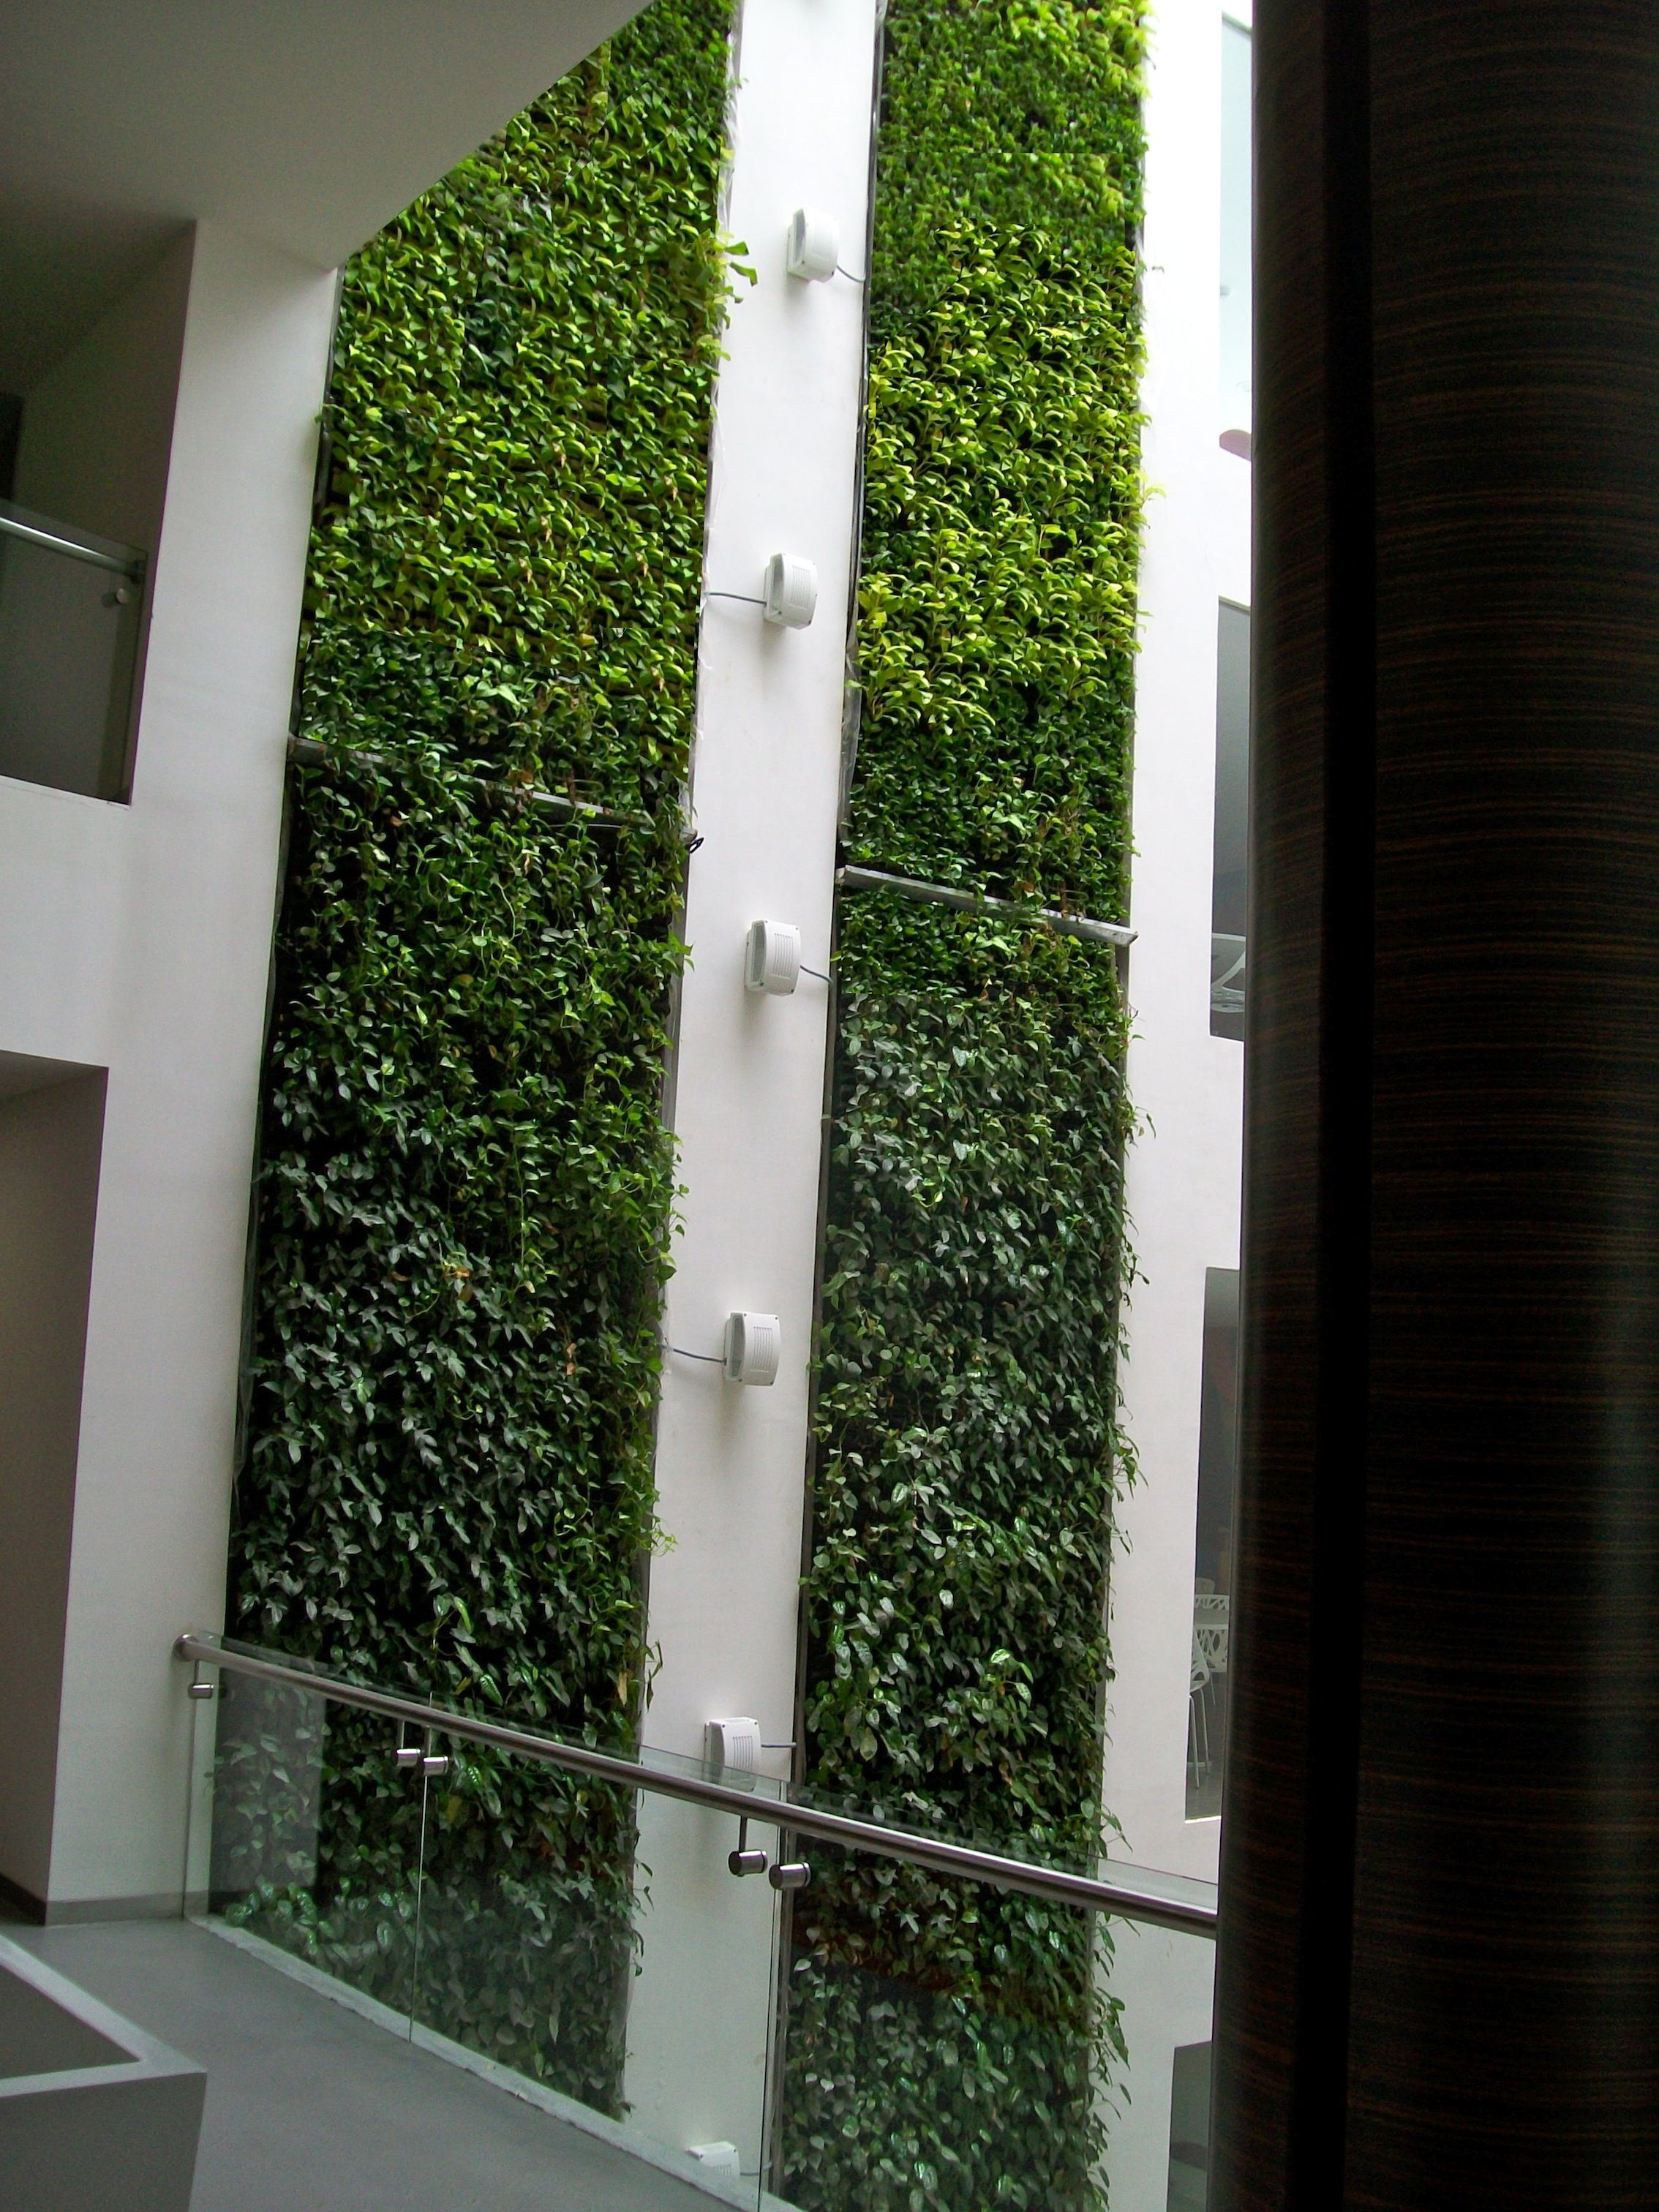 Joyous Vydro Substrate Green Wall Green Wall Vydro Substrate Vertical Gardens Wall Garden Plants Wall Garden Systems